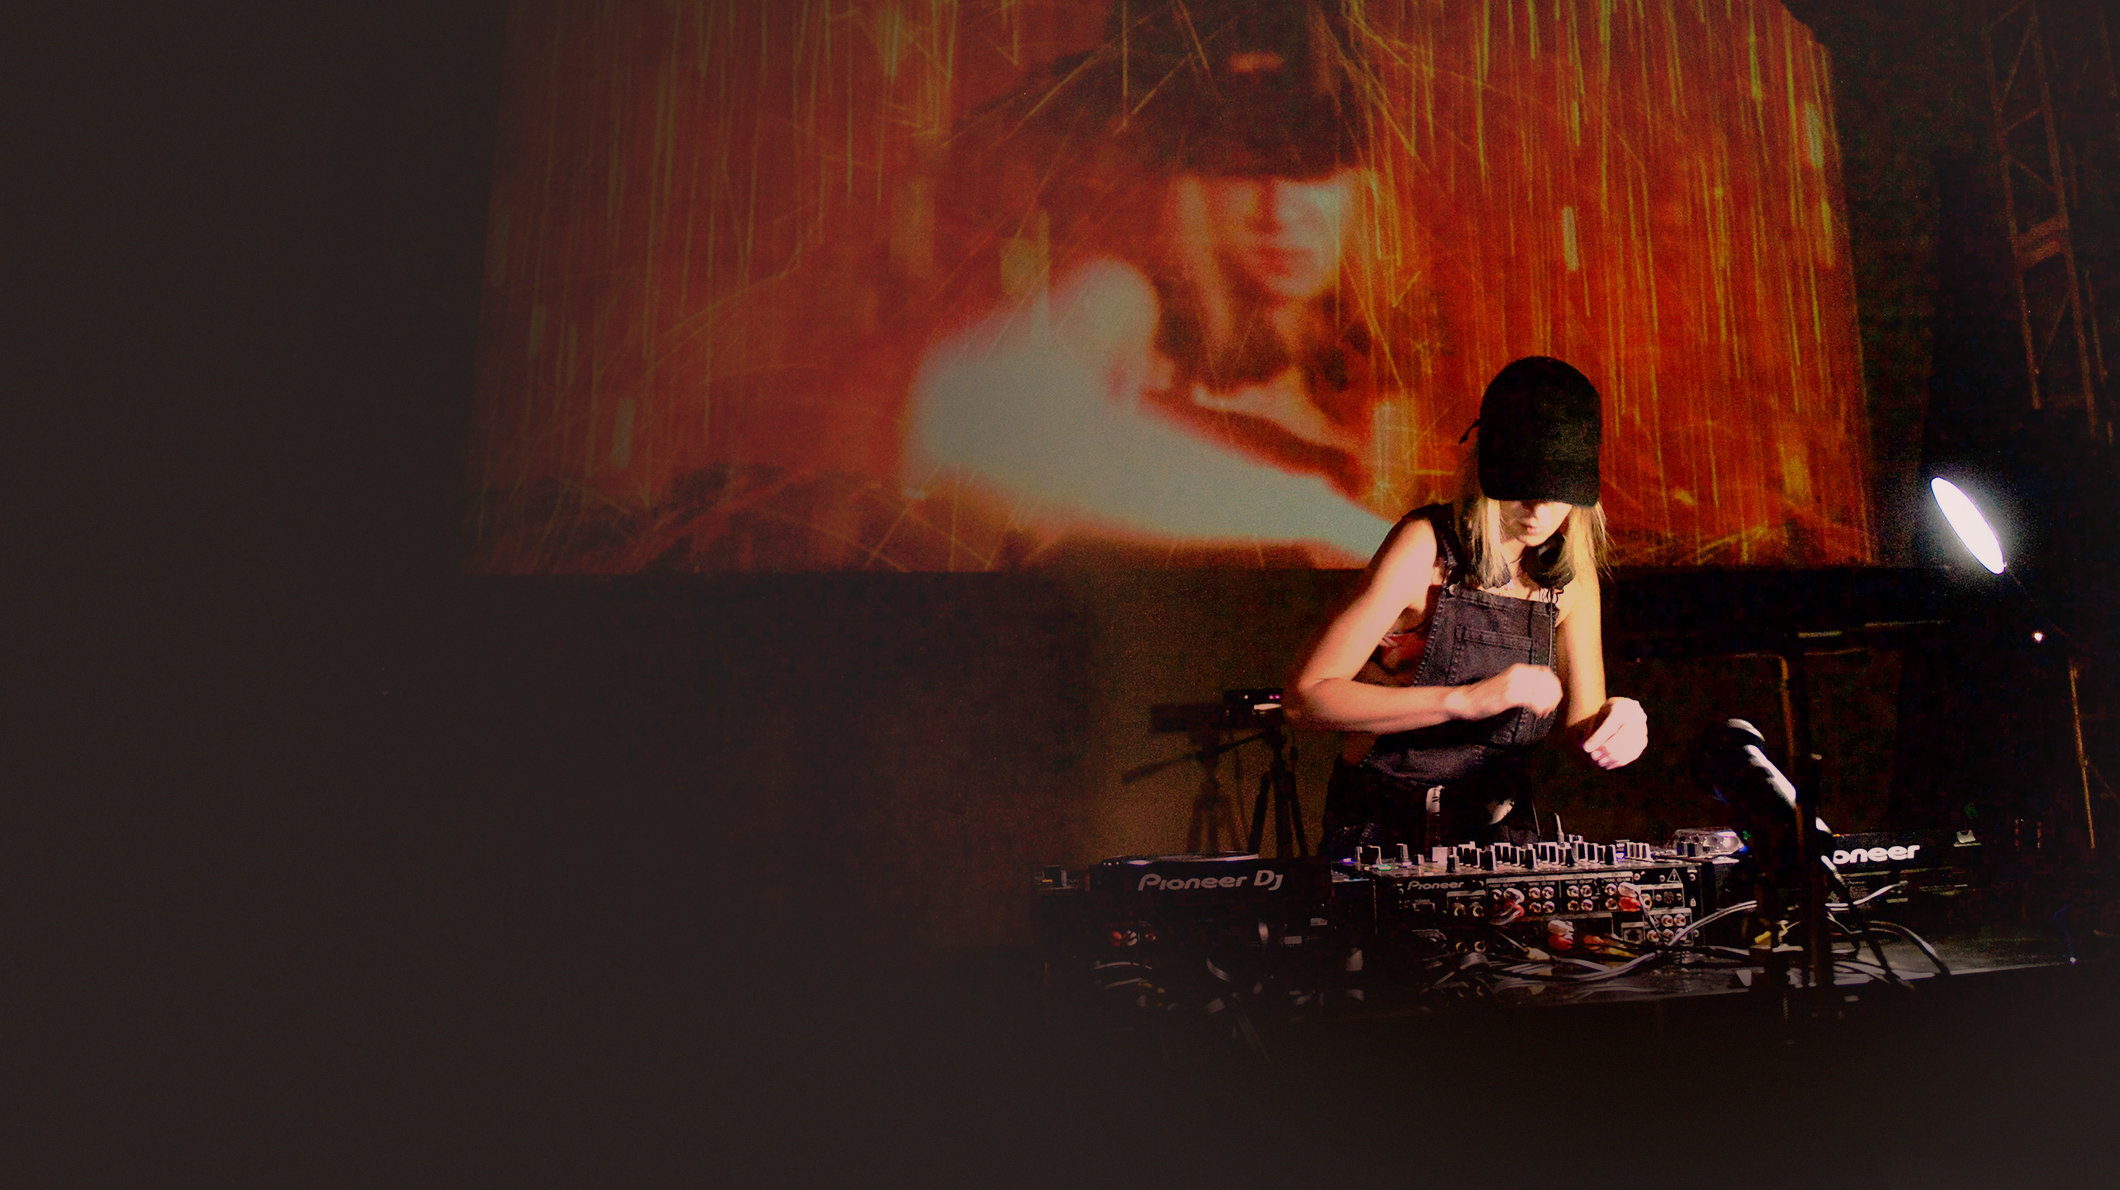 Alison Wonderland performs as her enhanced image is projected on a large screen